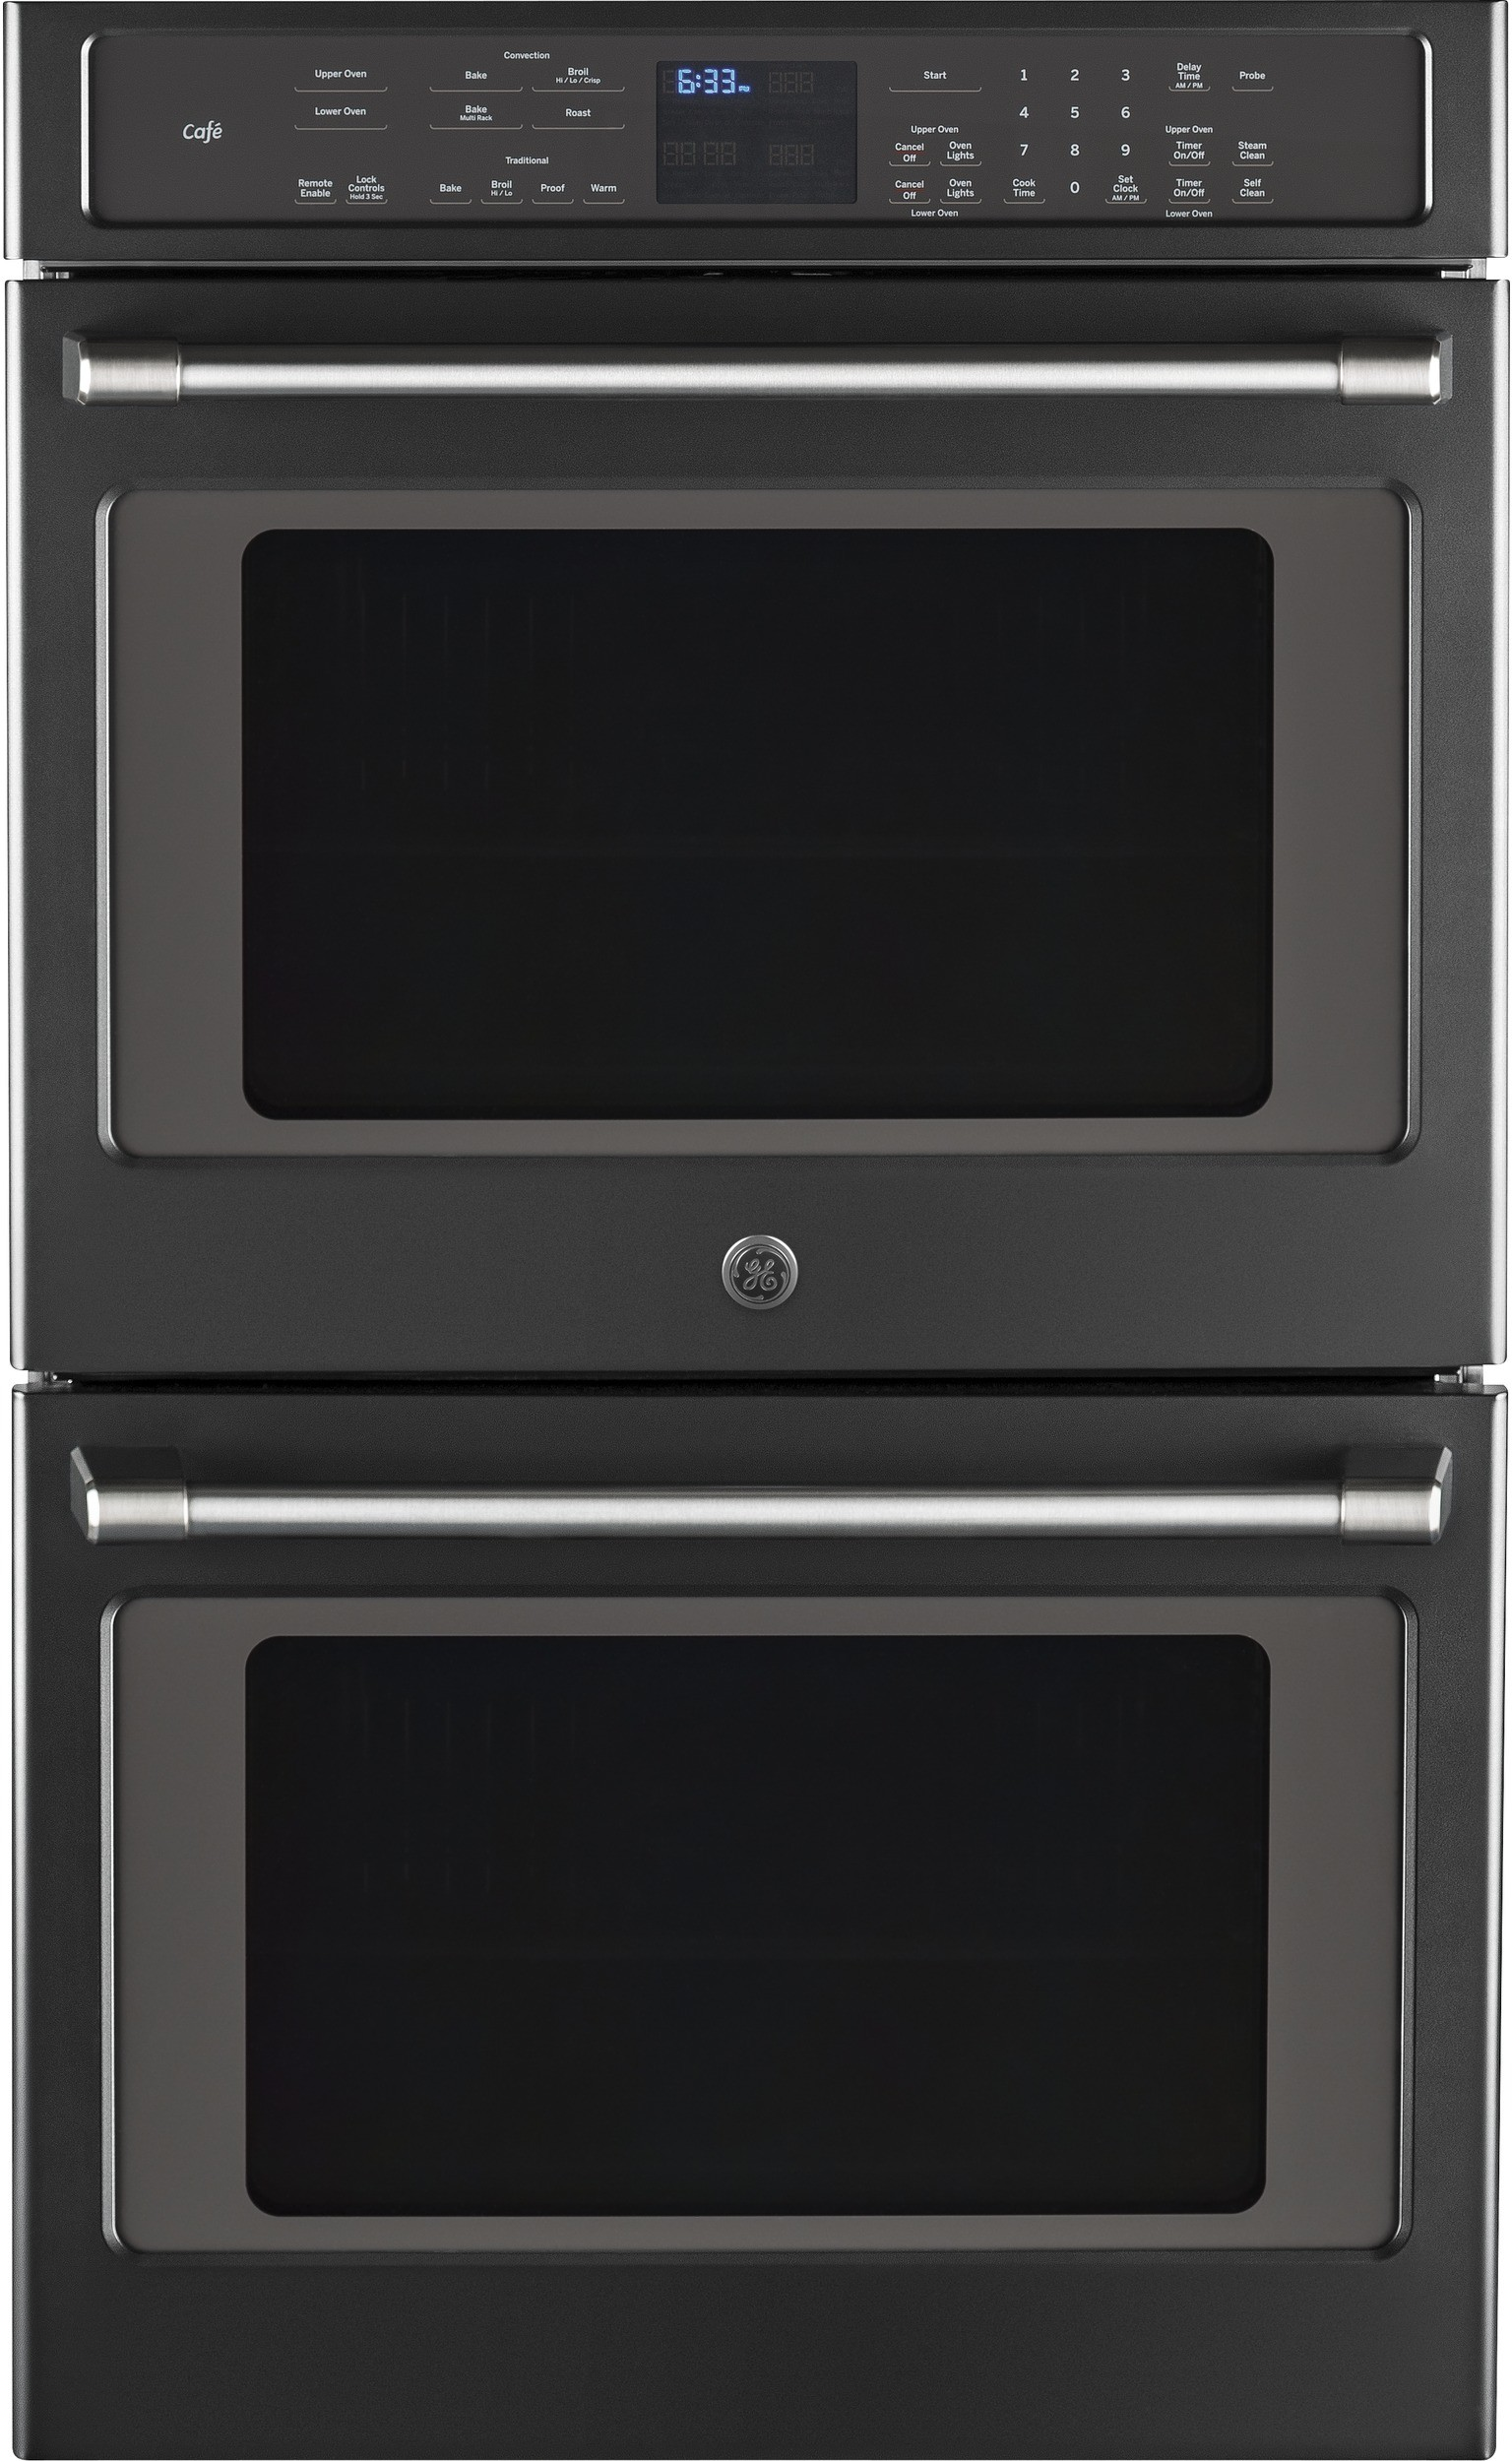 ranges cooking oven ceramic whirlpool reg bake frozen range technology cu freestanding with aqualift toaster cleaning trade electric self convection clean ft